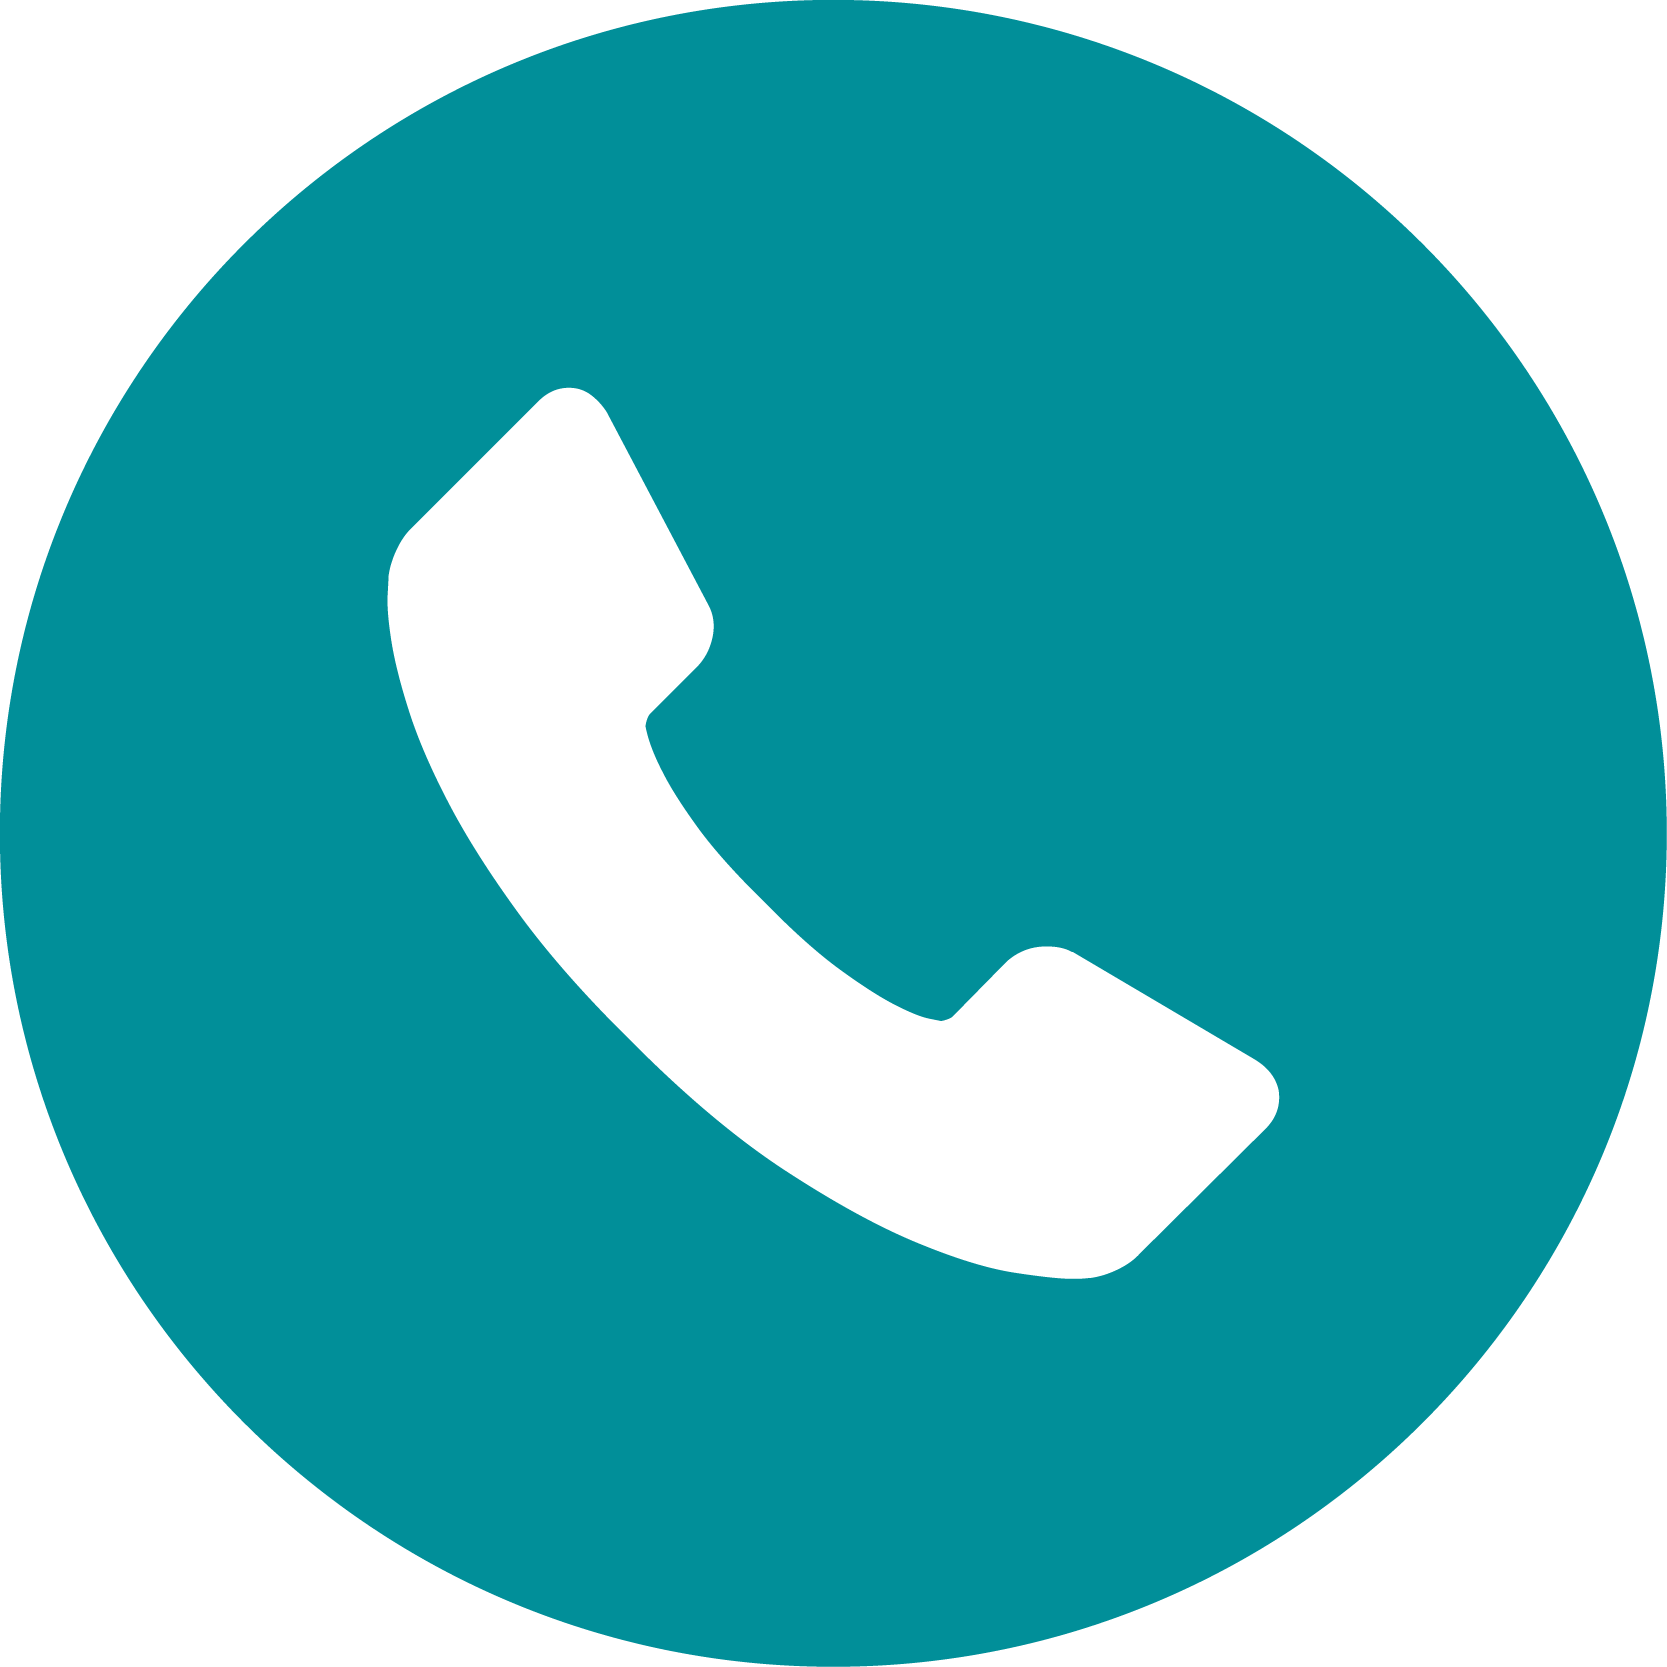 Phone Clipart PNG Image